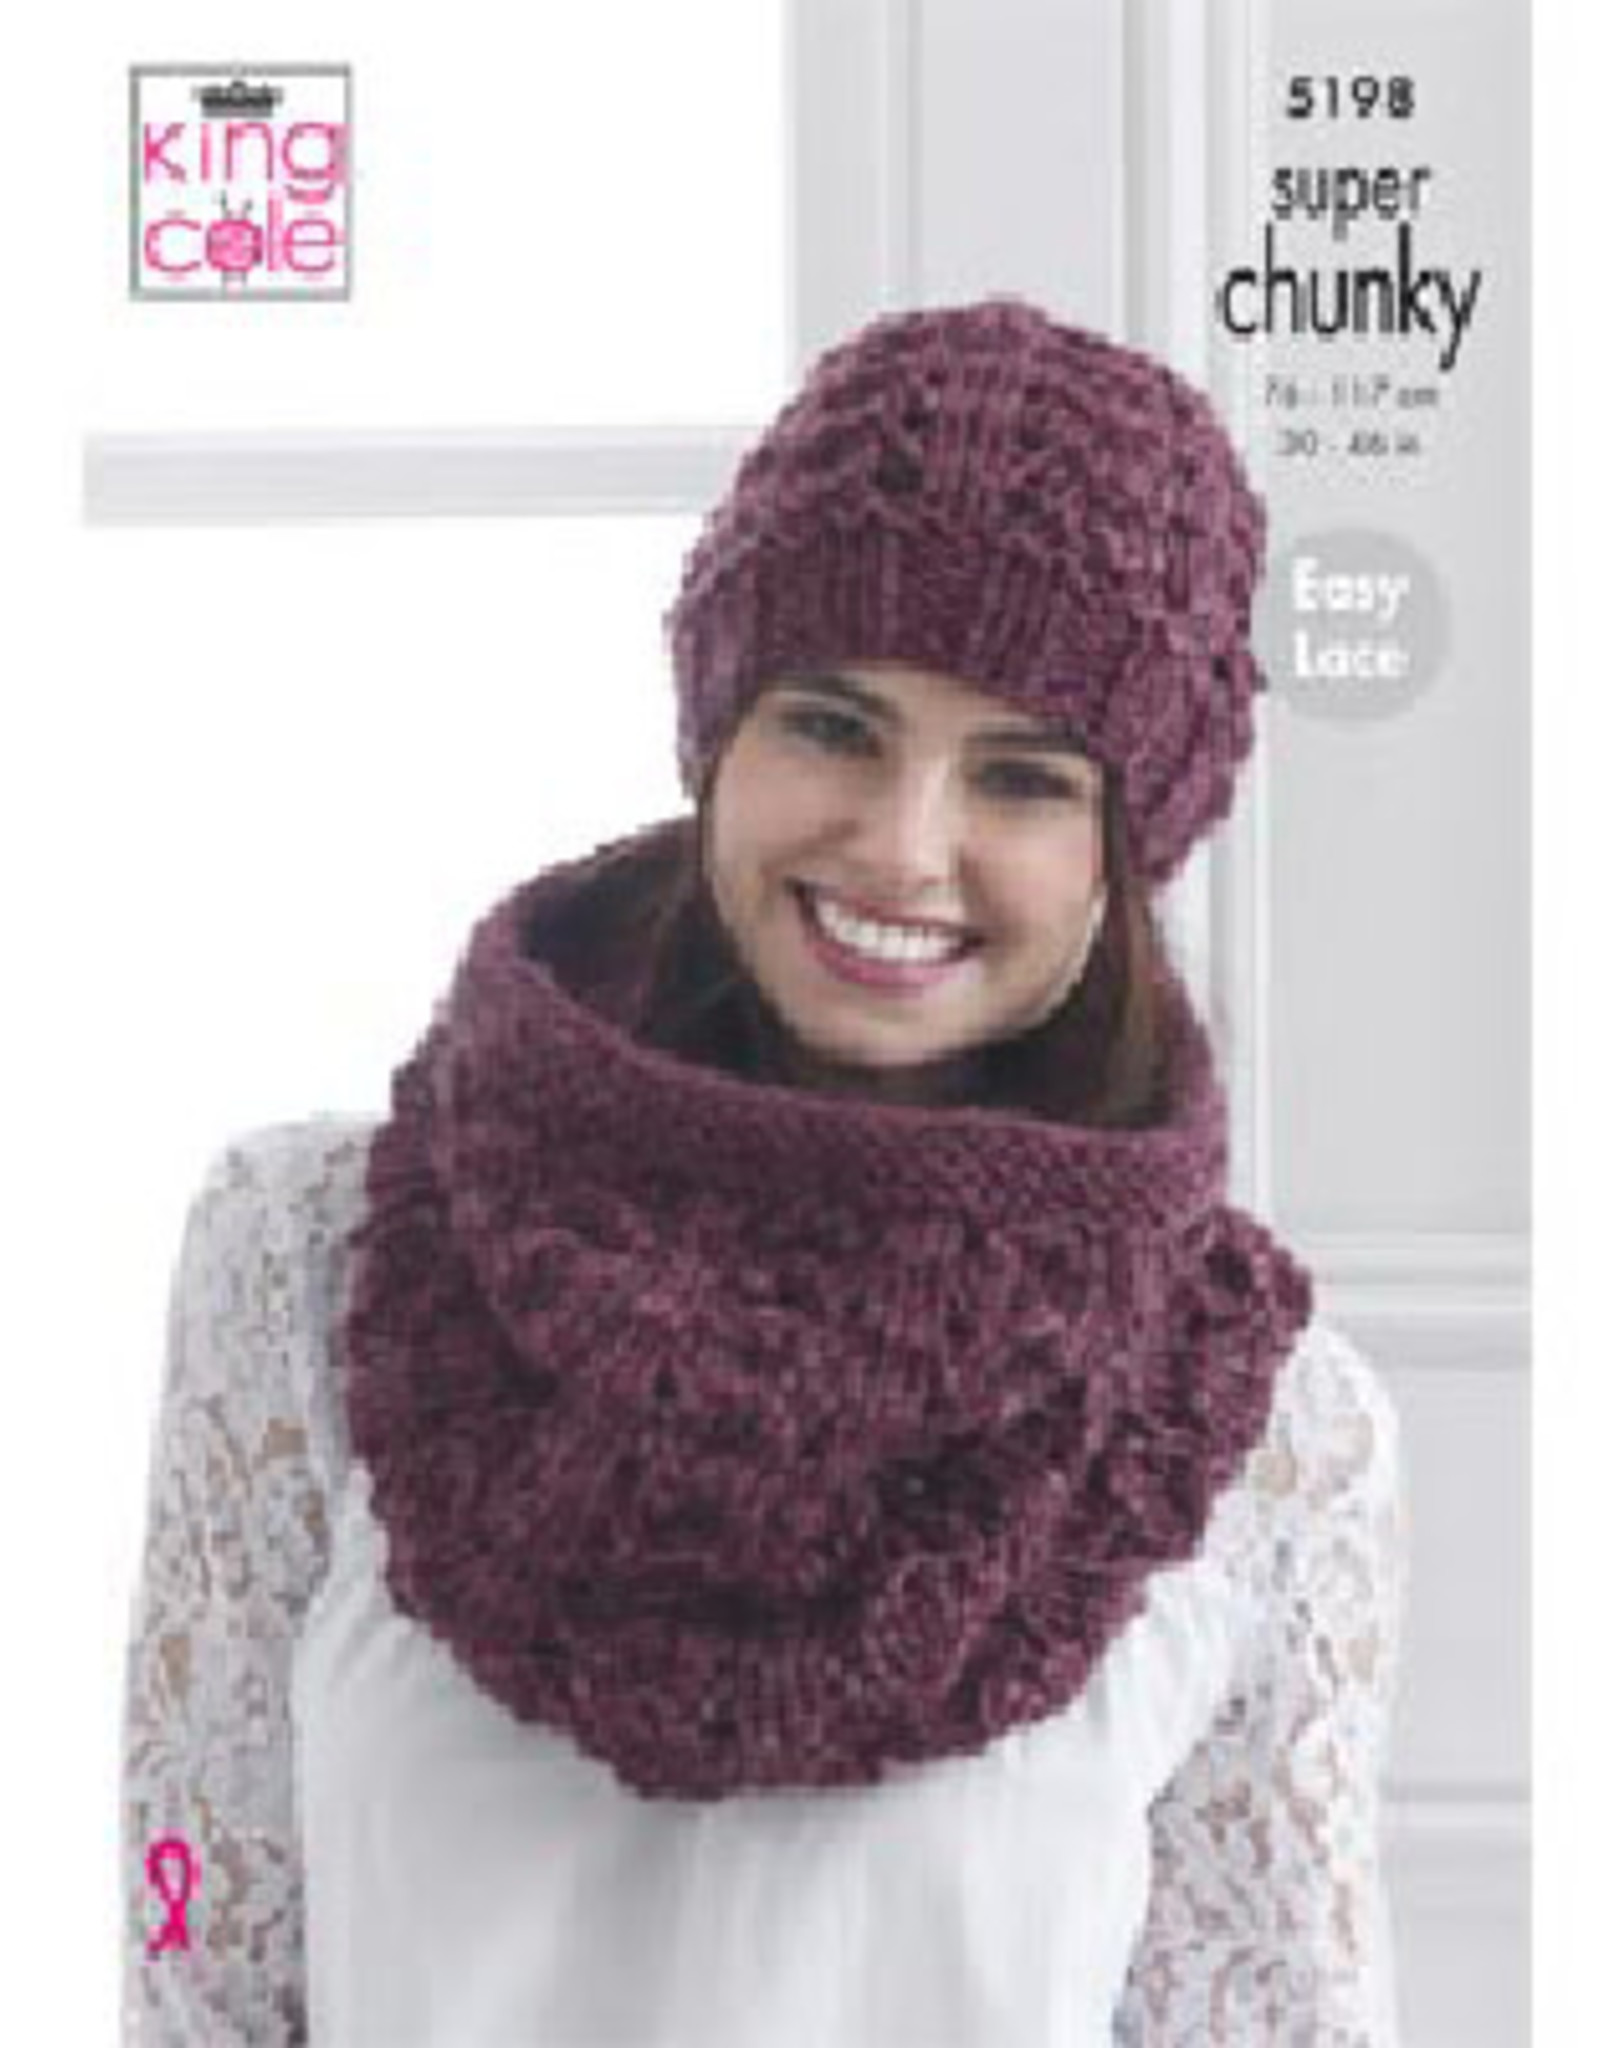 King Cole Patterns - Woman's Accessories - 5198